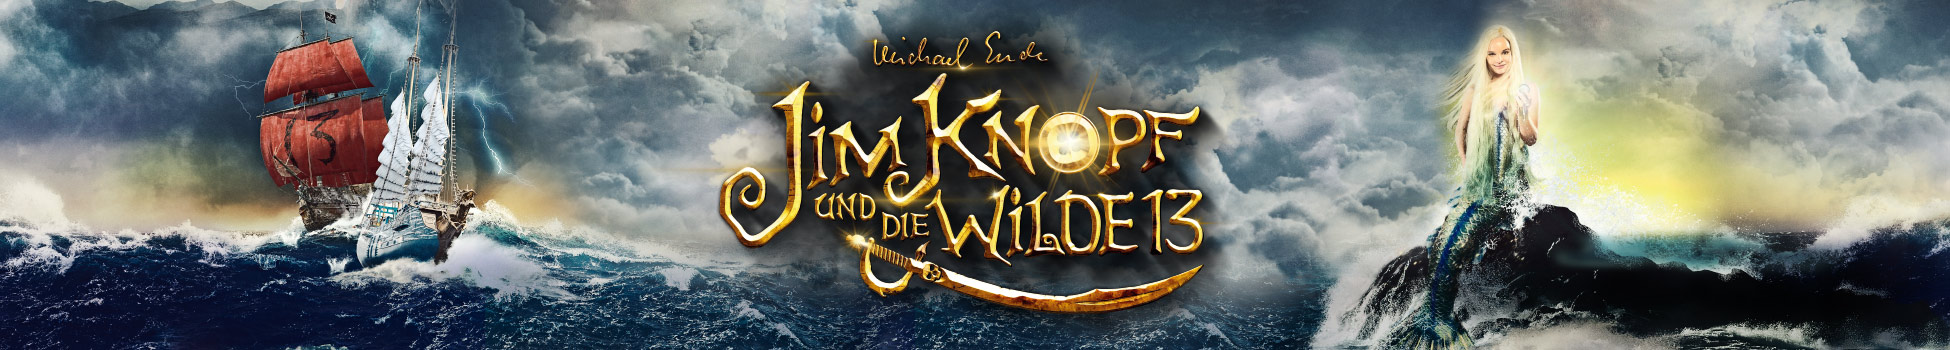 Jim Knopf und die wilde 13 - Artwork - Key Visual - Header